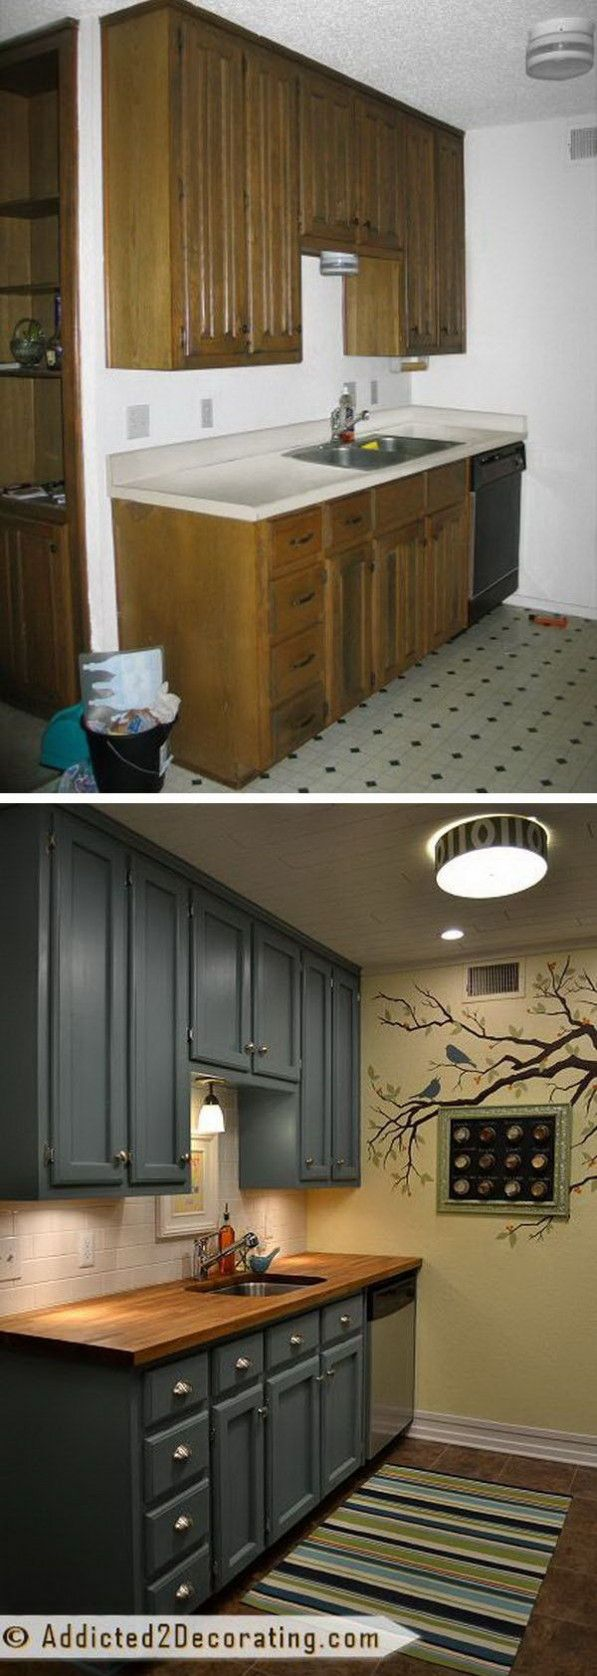 50+ How to Redo Your Kitchen Cabinets - Kitchen Cabinet Lighting ...